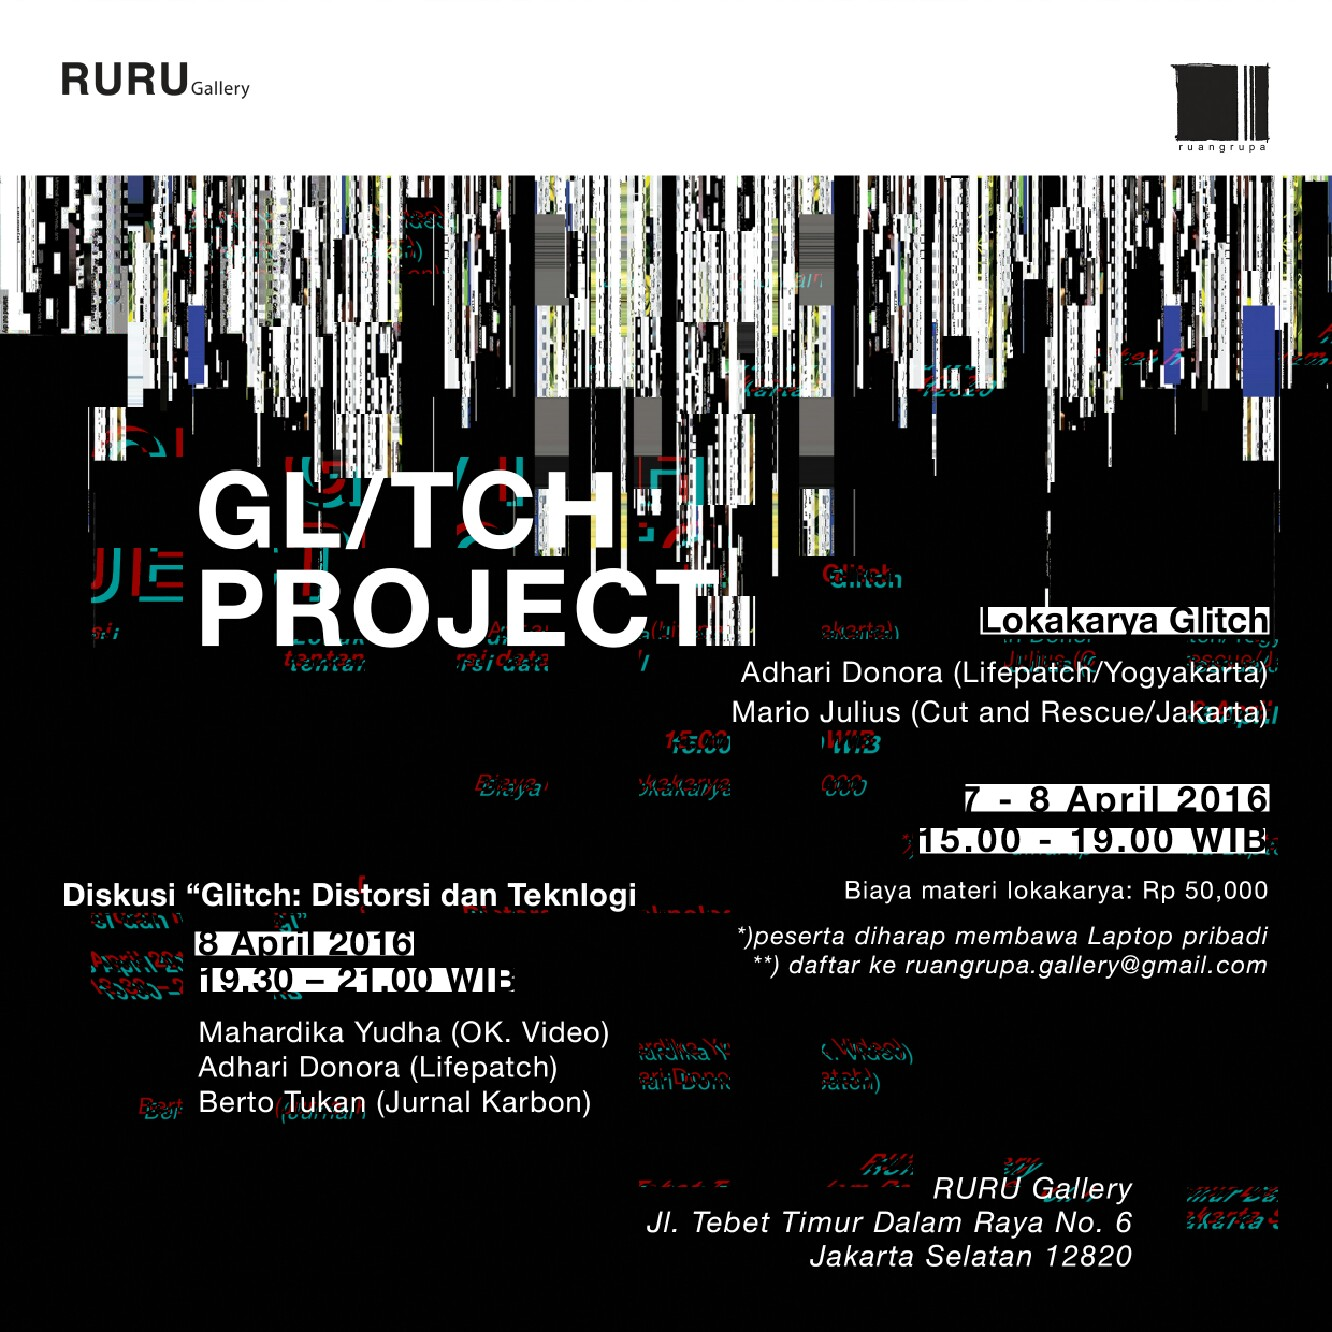 GL/TCH PROJECT